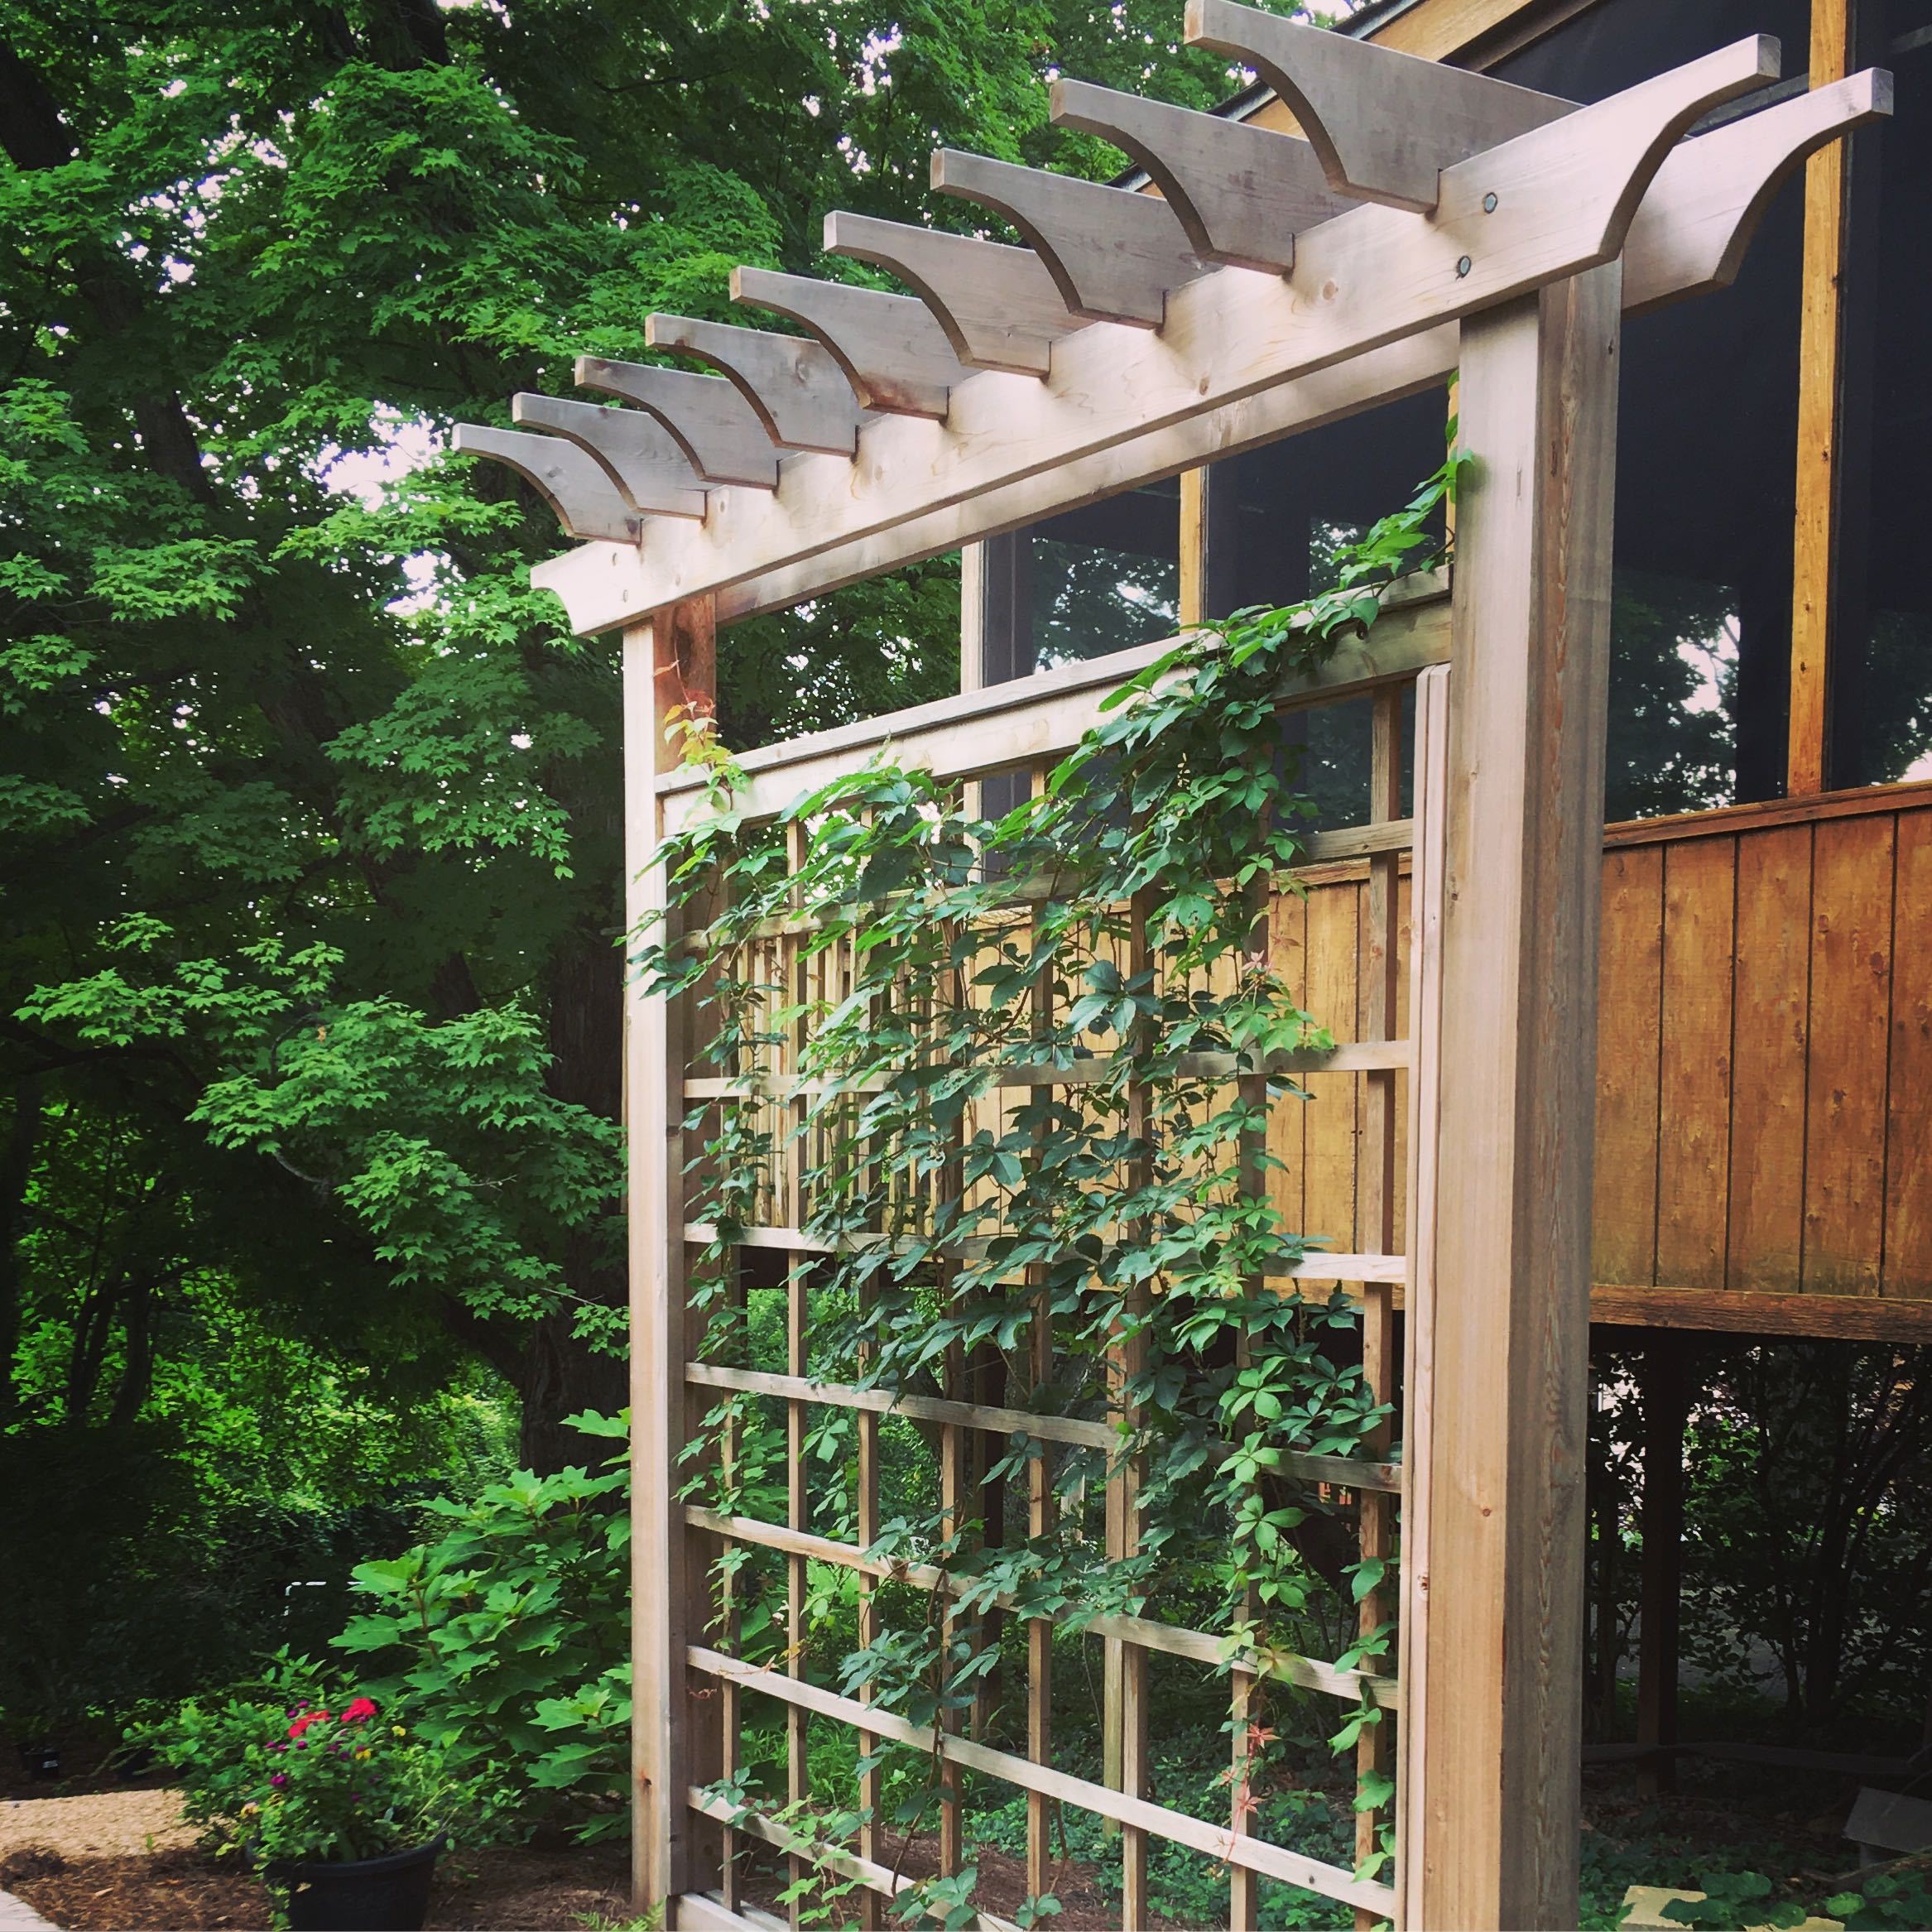 Native vine, virginia creeper begins to fill out the trellis